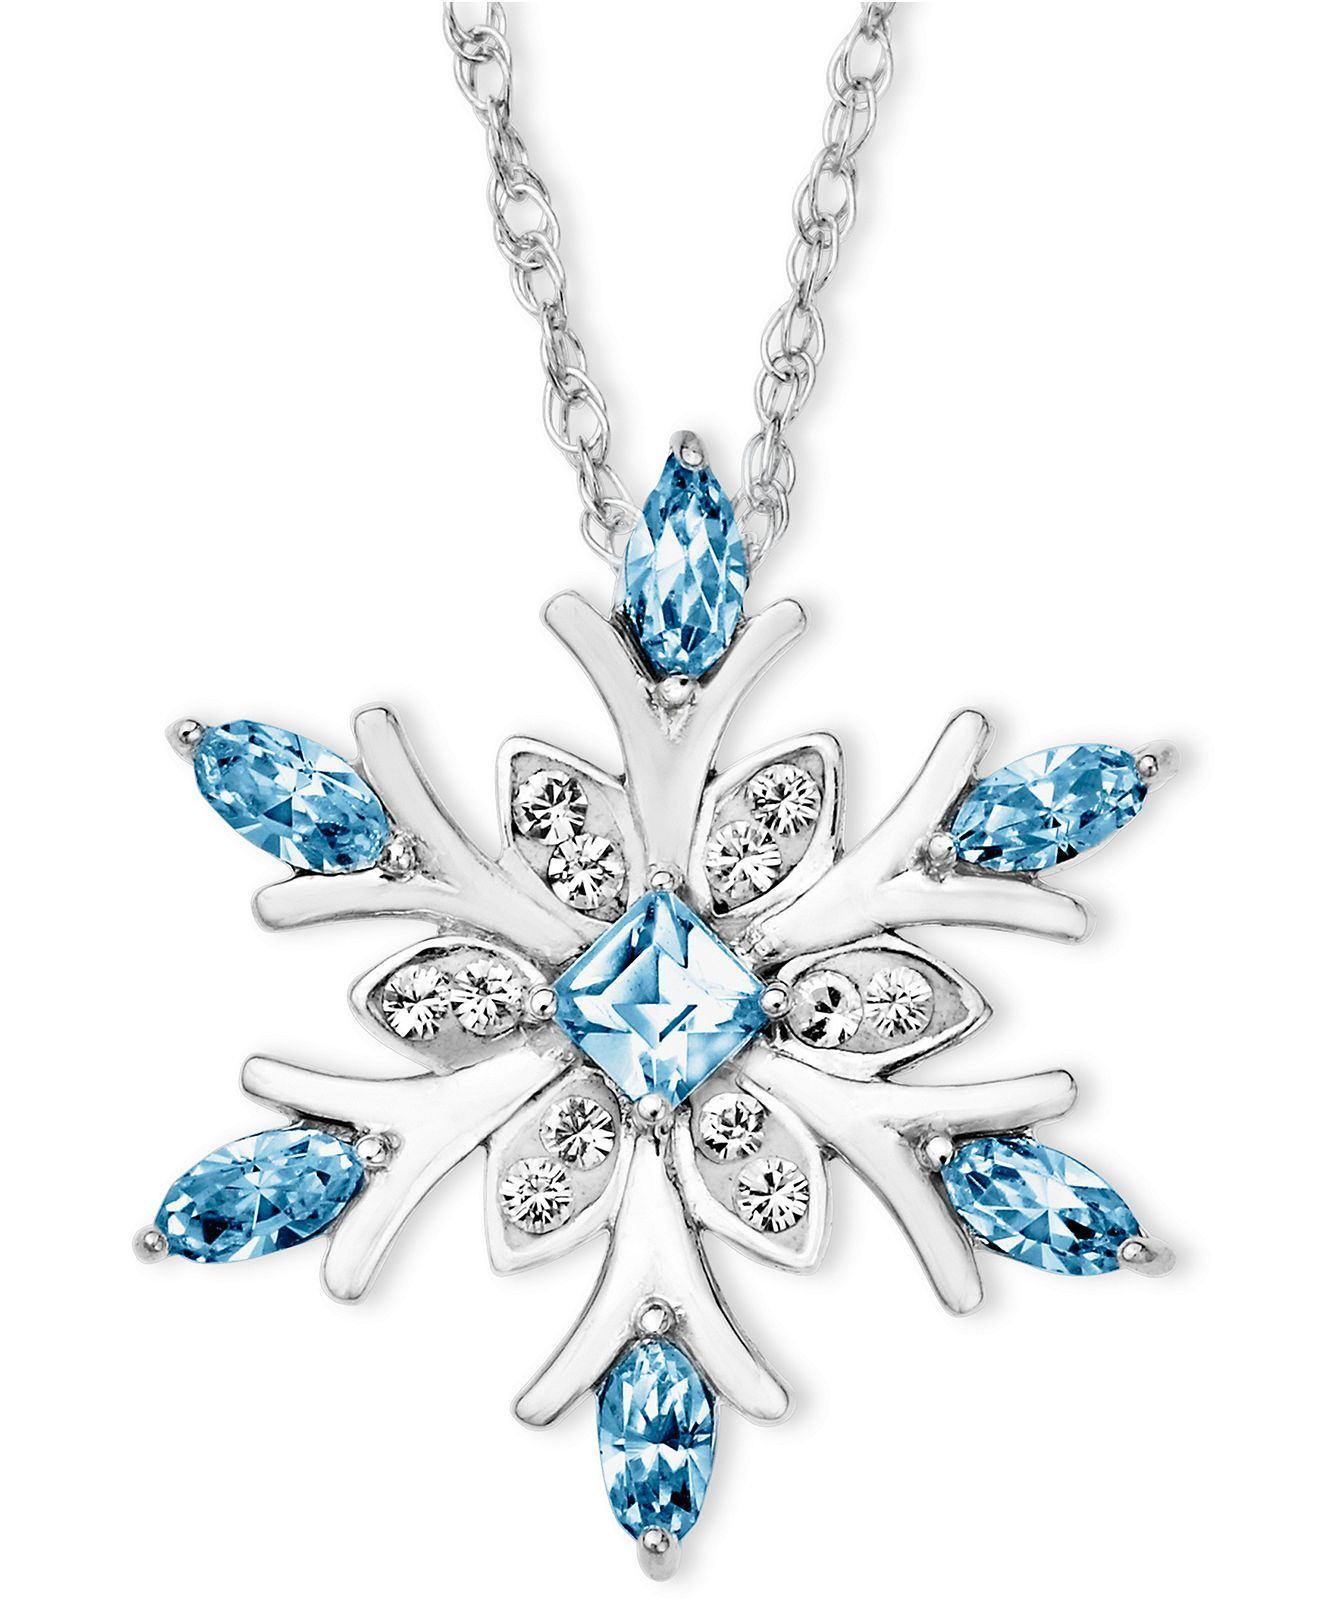 2de0592add Kaleidoscope Sterling Silver Necklace, Blue Crystal Snowflake Pendant with  Swarovski Elements - Necklaces - Jewelry & Watches - Macy's